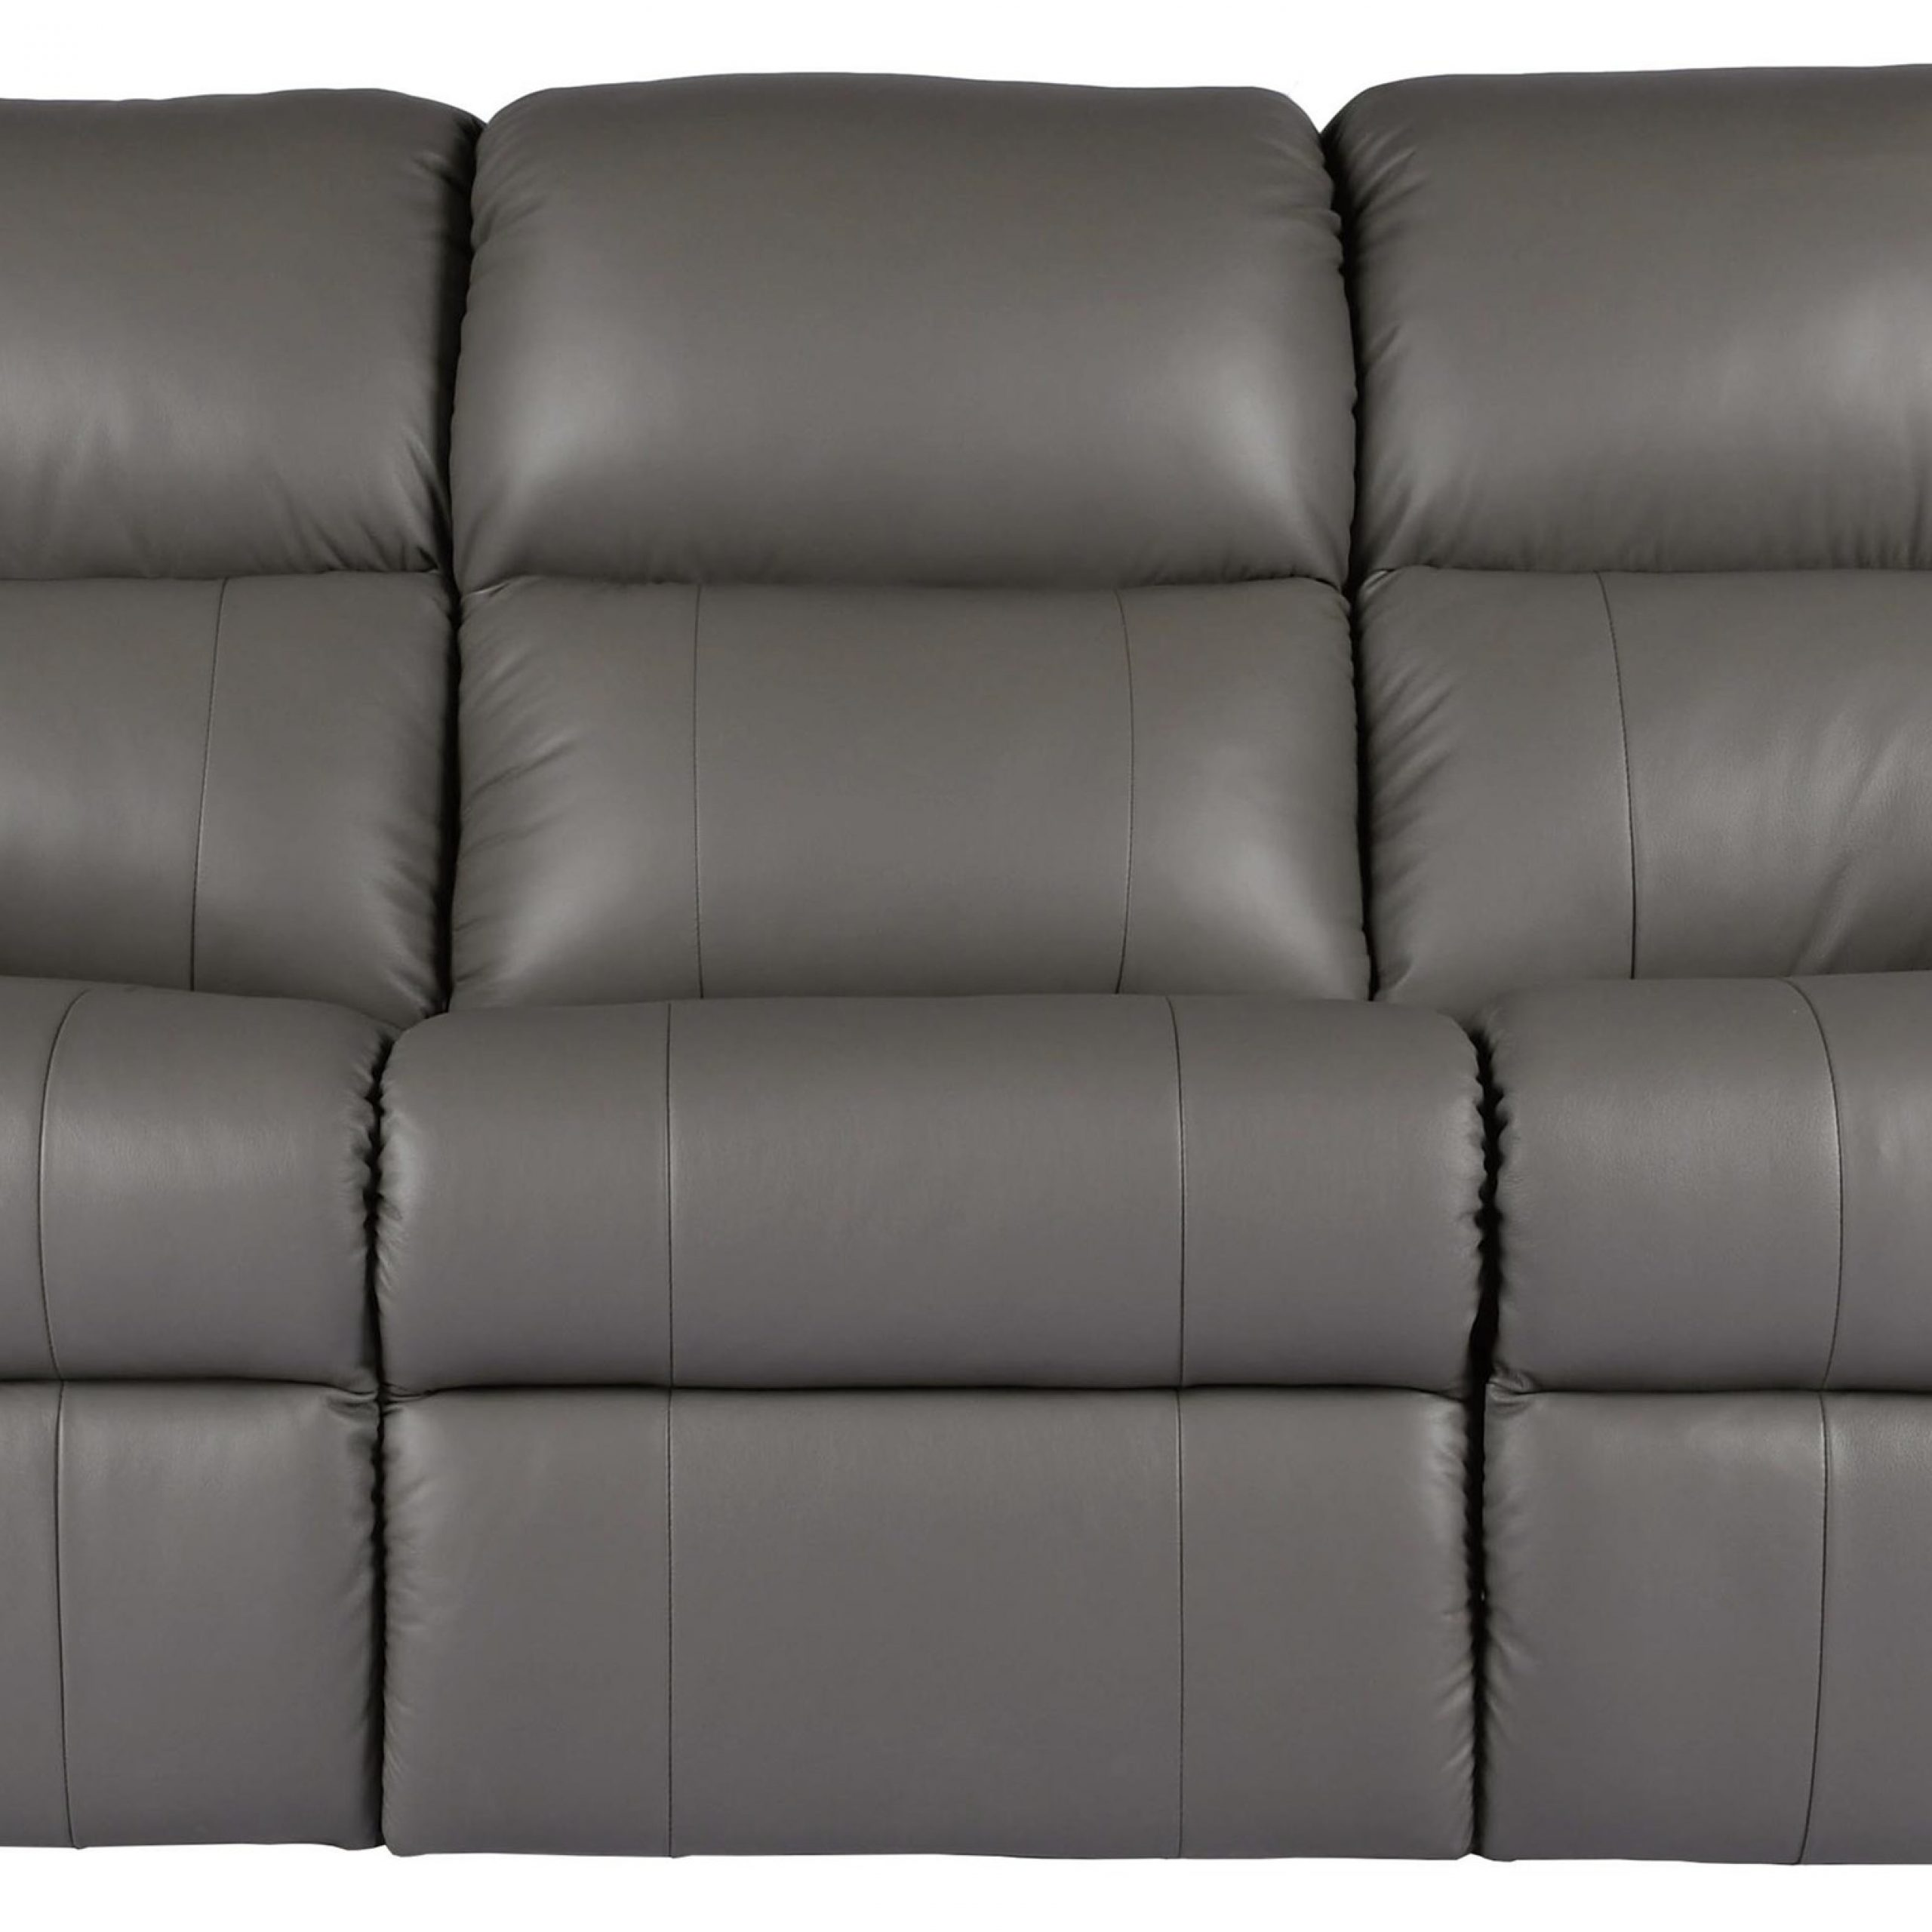 Most Up To Date Bennett Power Reclining Sofas Inside Rockwood Burleigh Power Reclining Sofa With Pillow Arms (View 14 of 15)